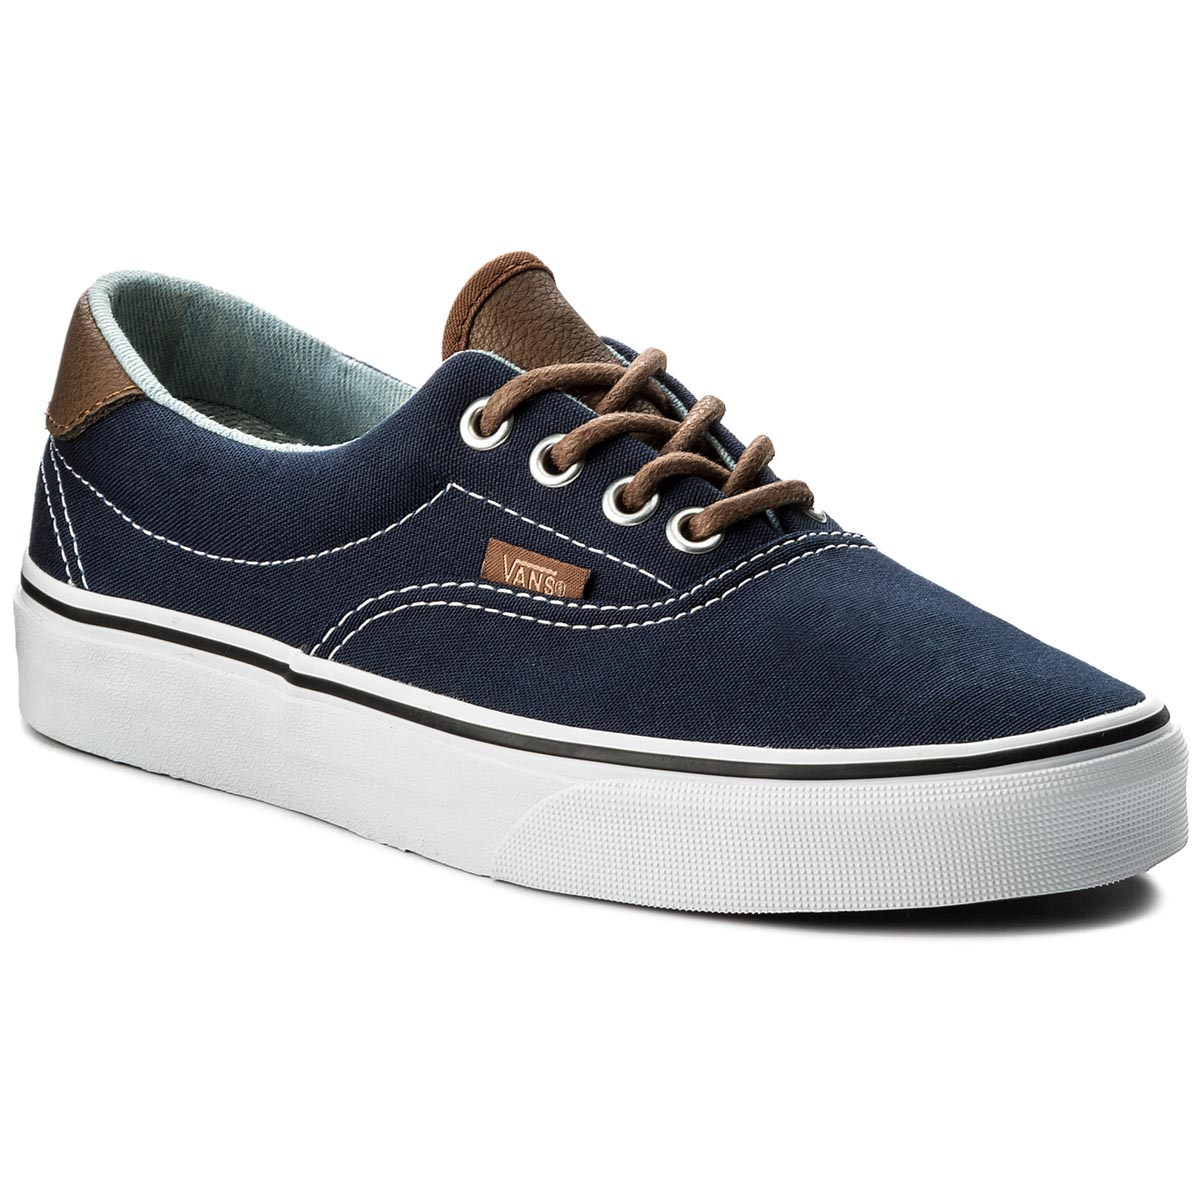 Teniși VANS - Era 59 VA38FSQ6Z (C&L) Dress Blues/Acid De